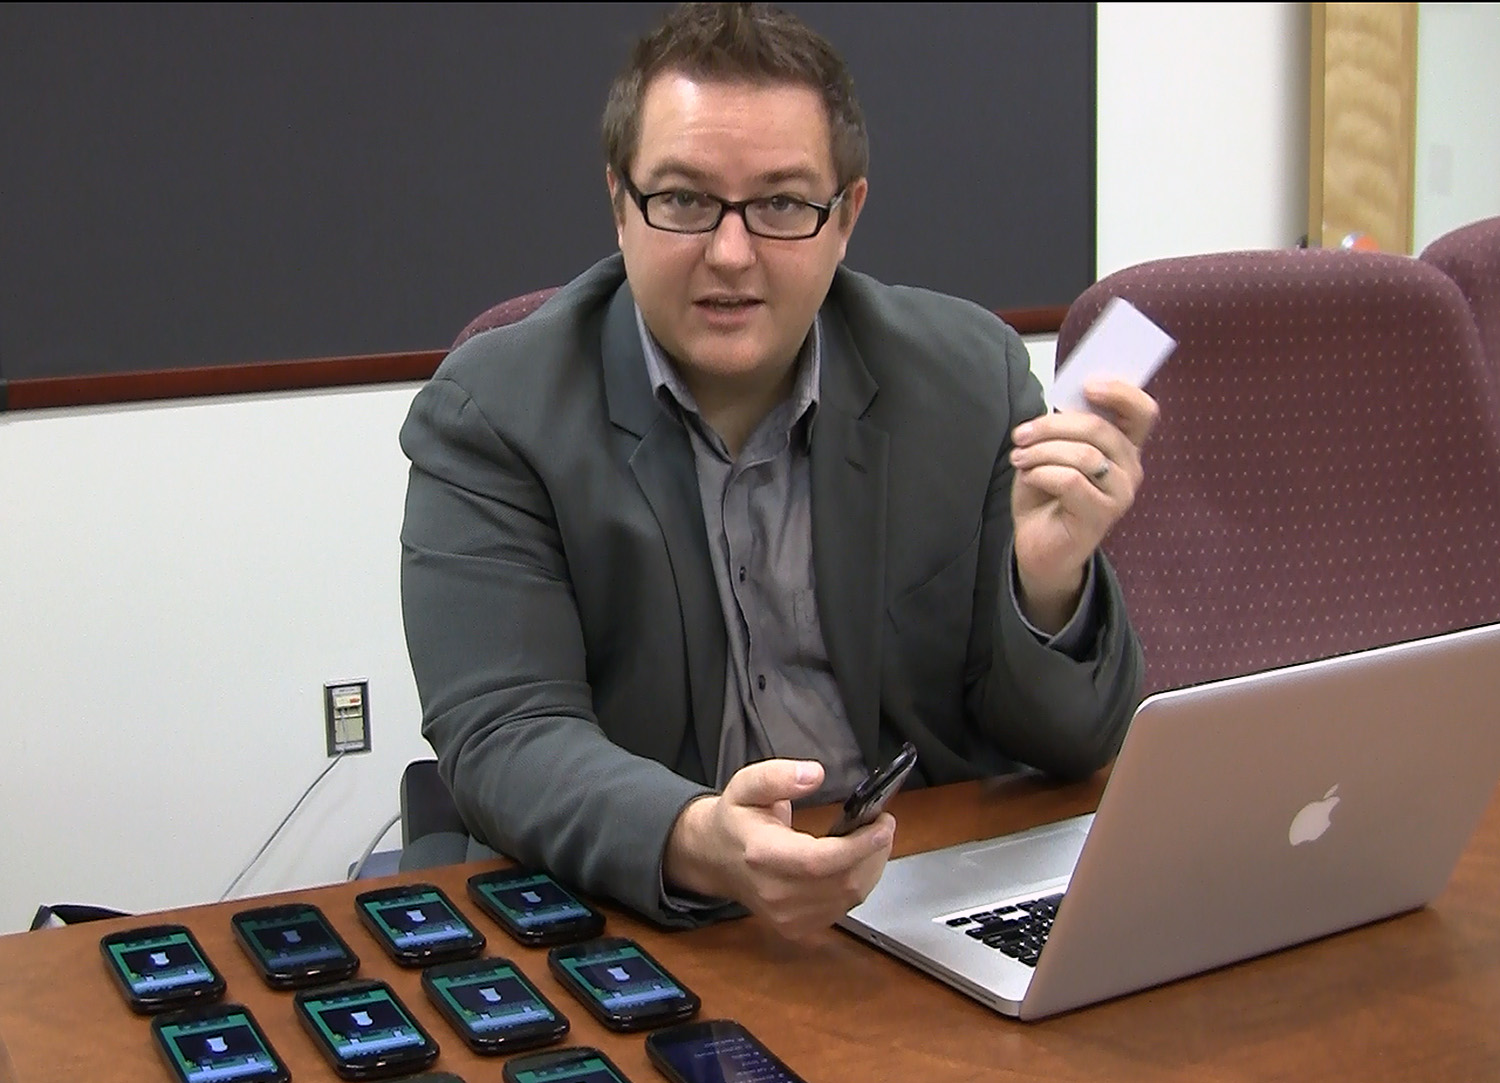 Jules White with laptop that controls the bank of cell phones